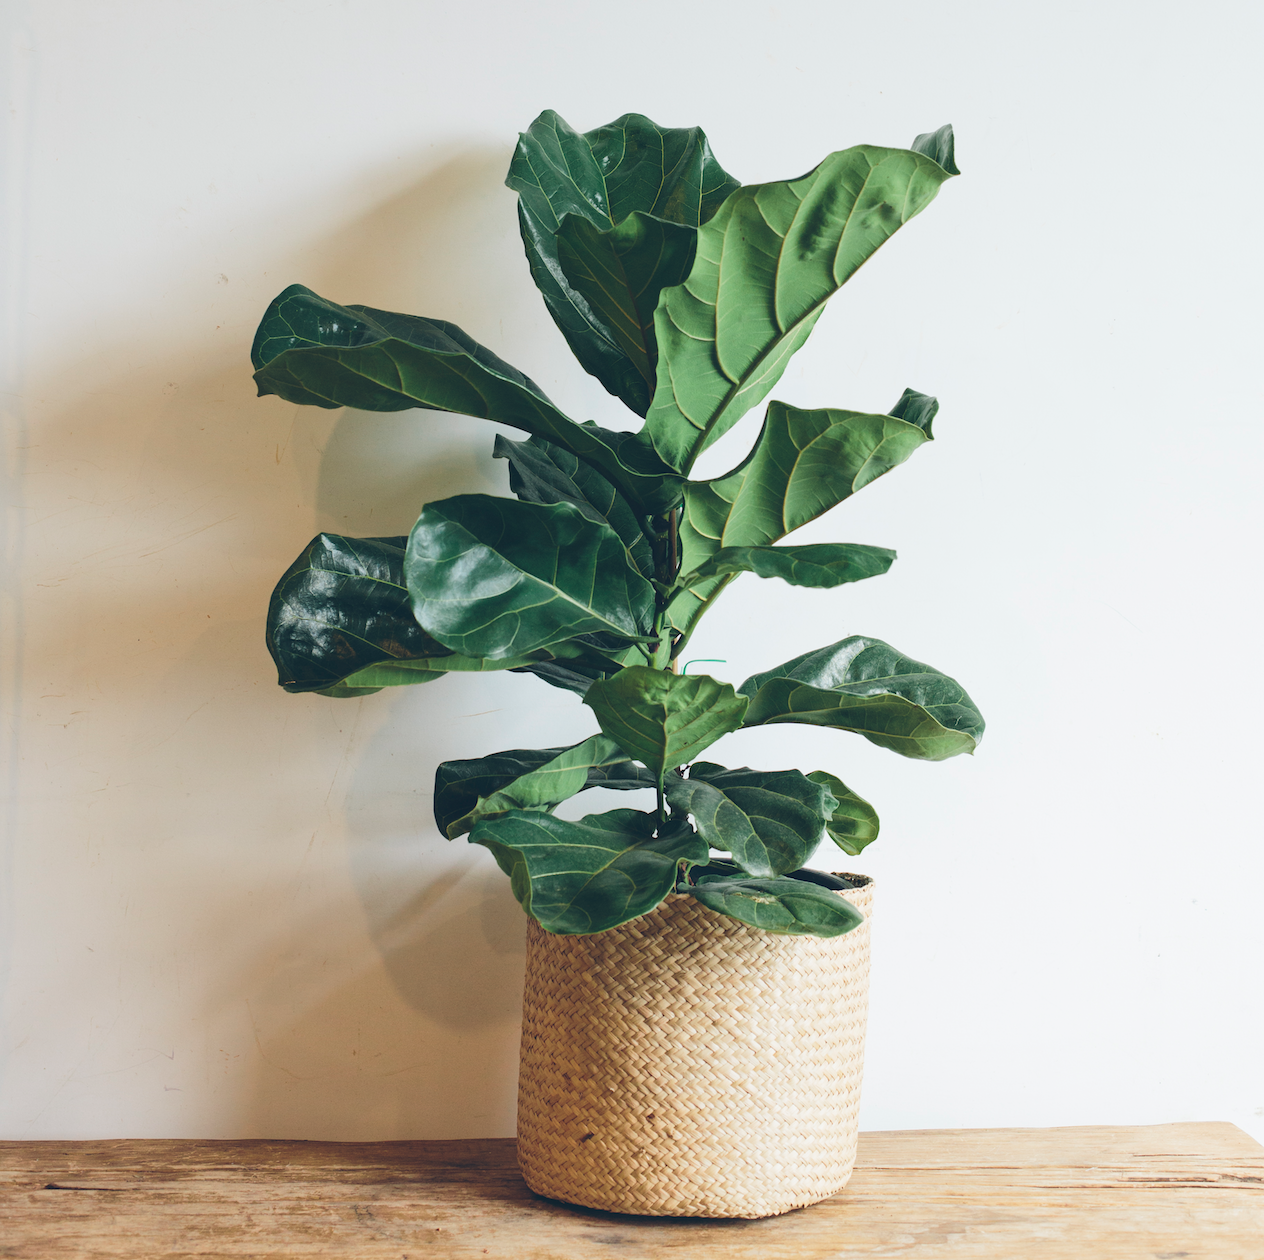 Image from Zest Flowers - Buy similar at  House of Plants